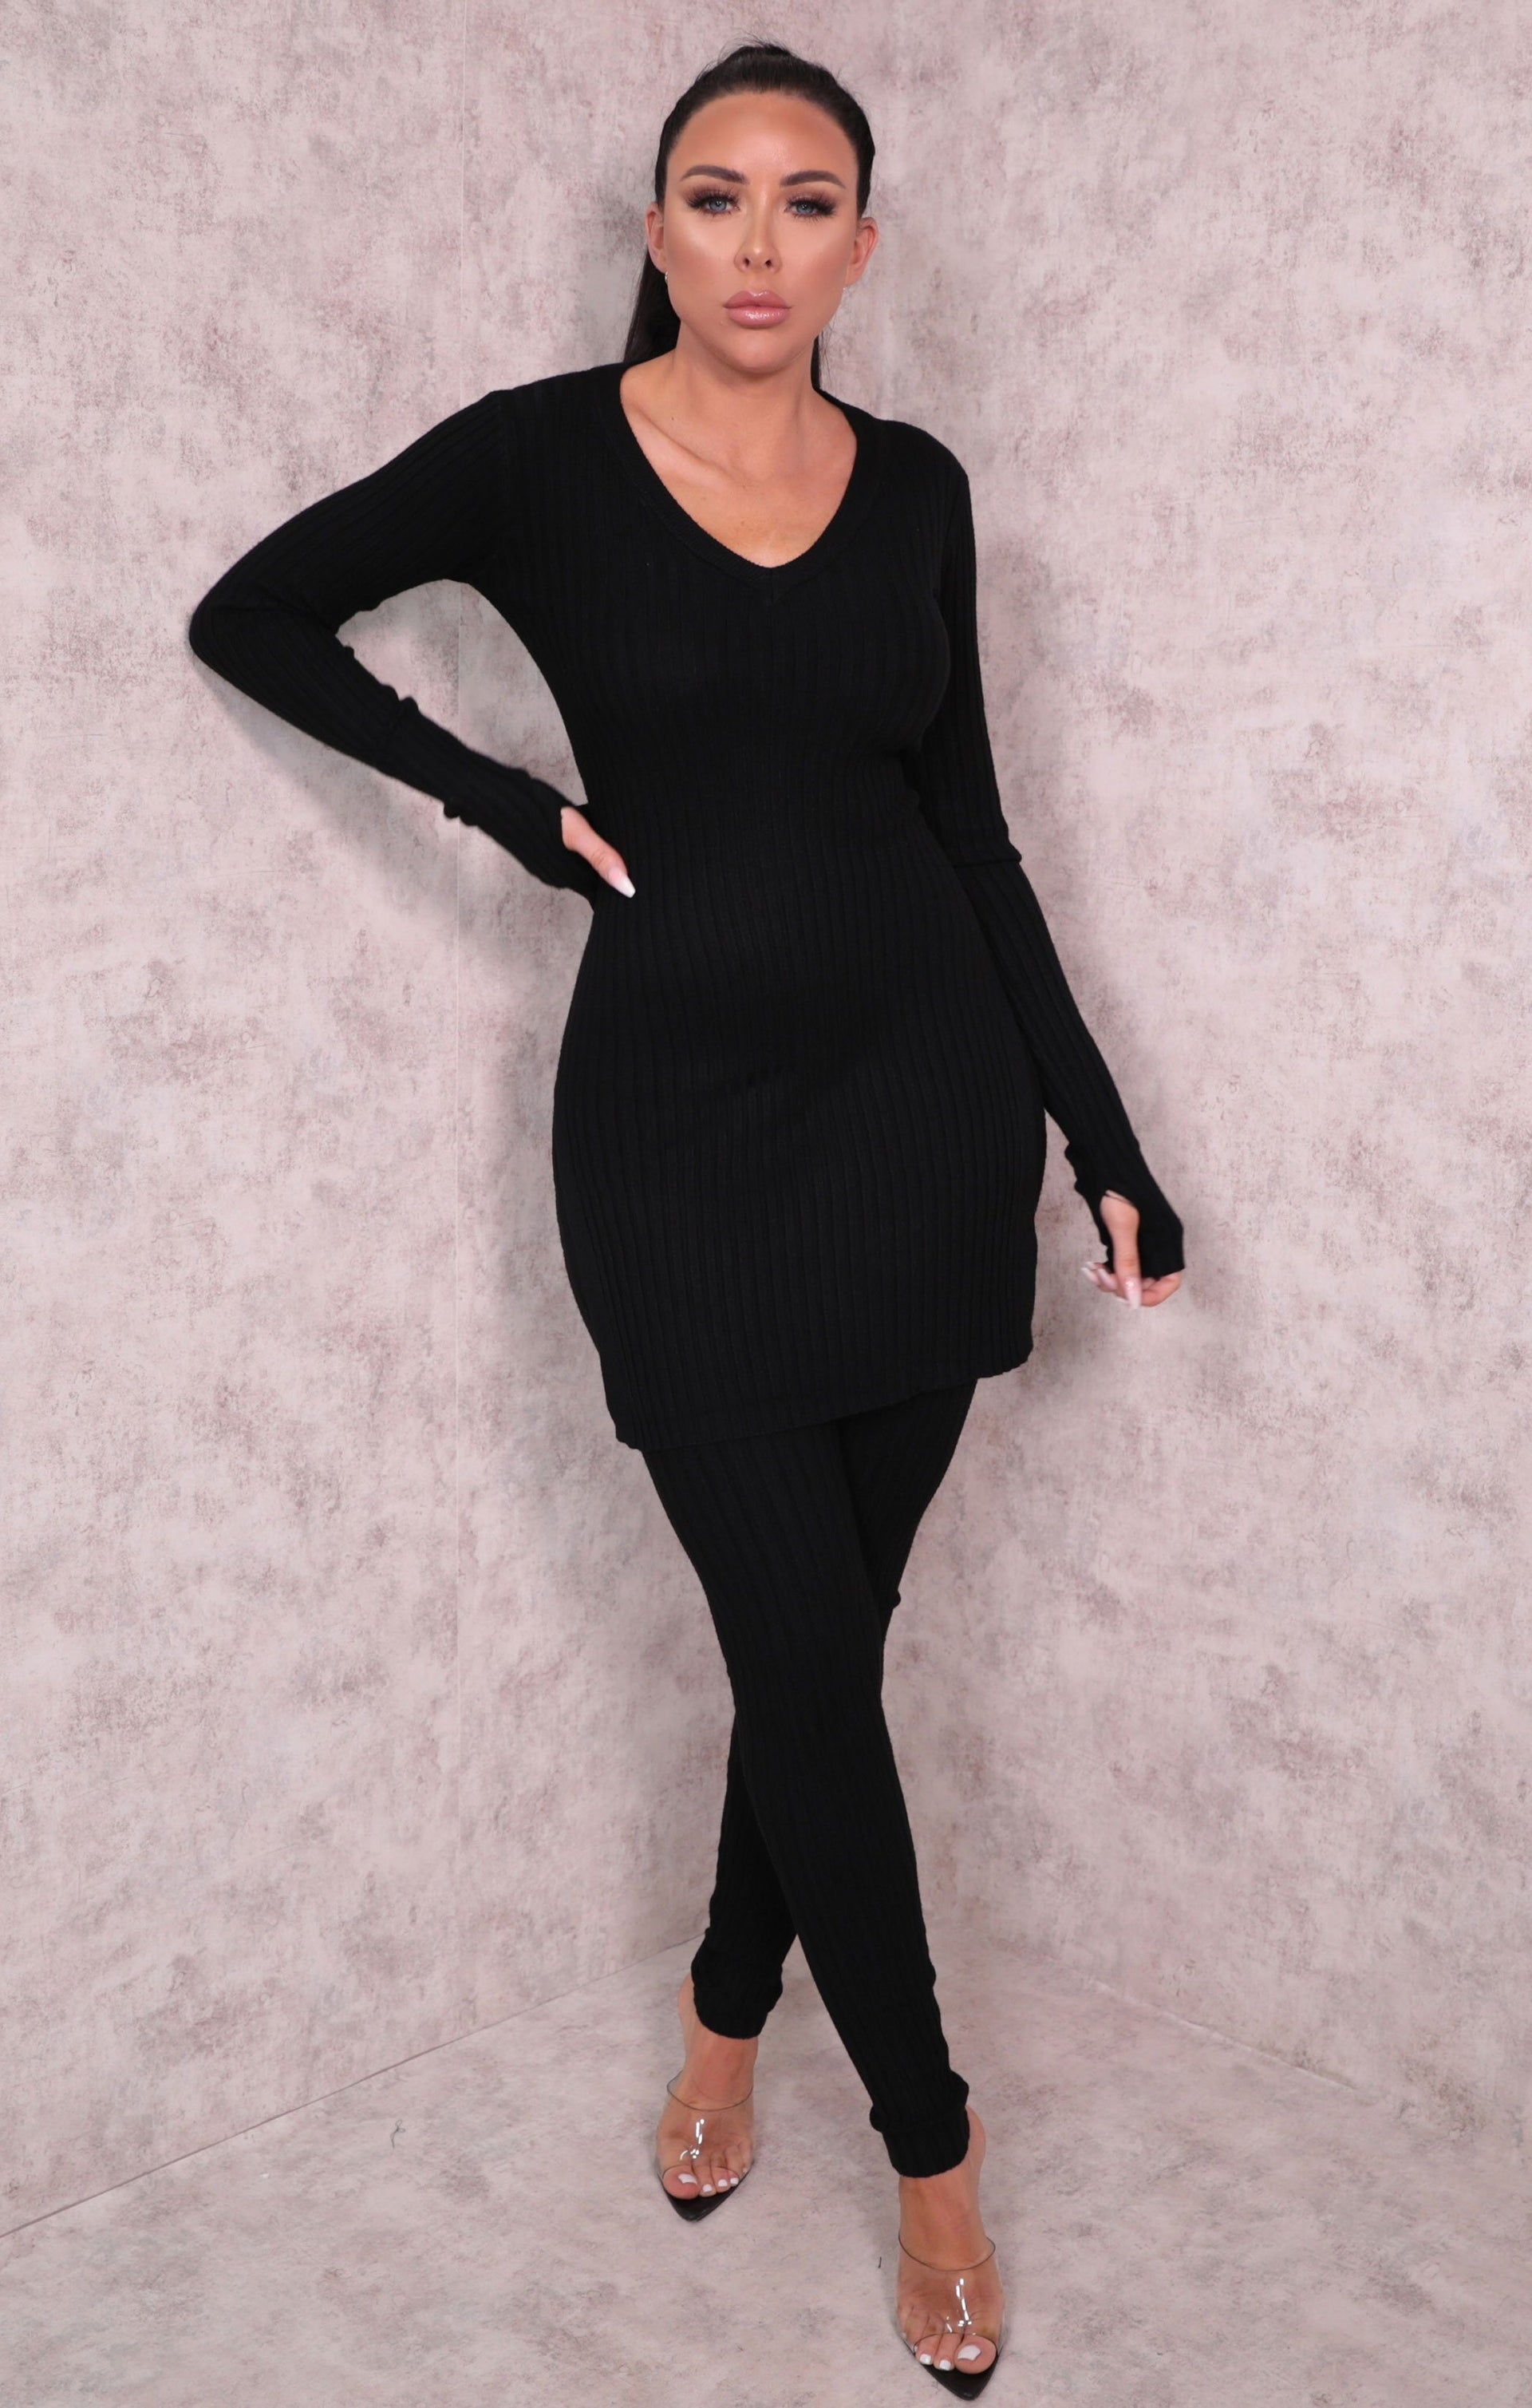 Black Ribbed Knitted V-Neck Leggings Loungewear Set - Lannie